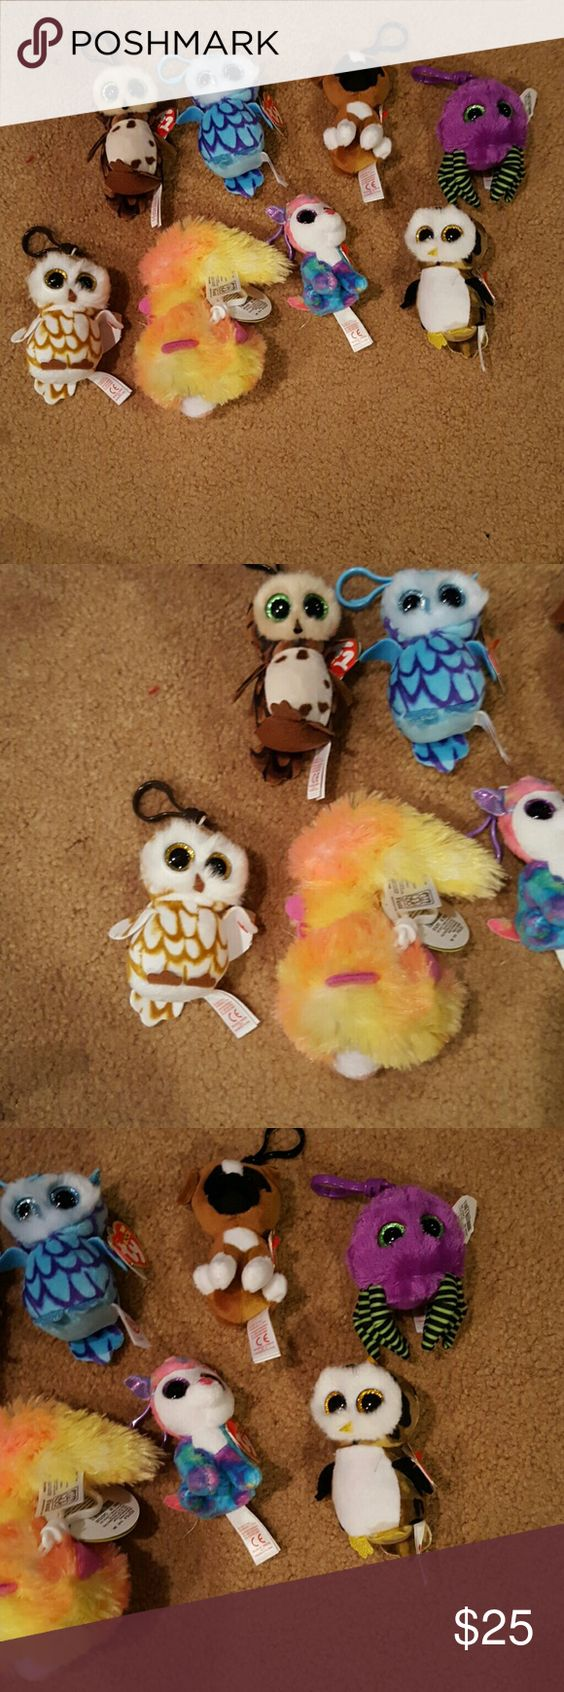 Beanie babies key chains Cute and adorable Beanie baby key chains of all different animals. The price is for 4 Beanie babies. Accessories